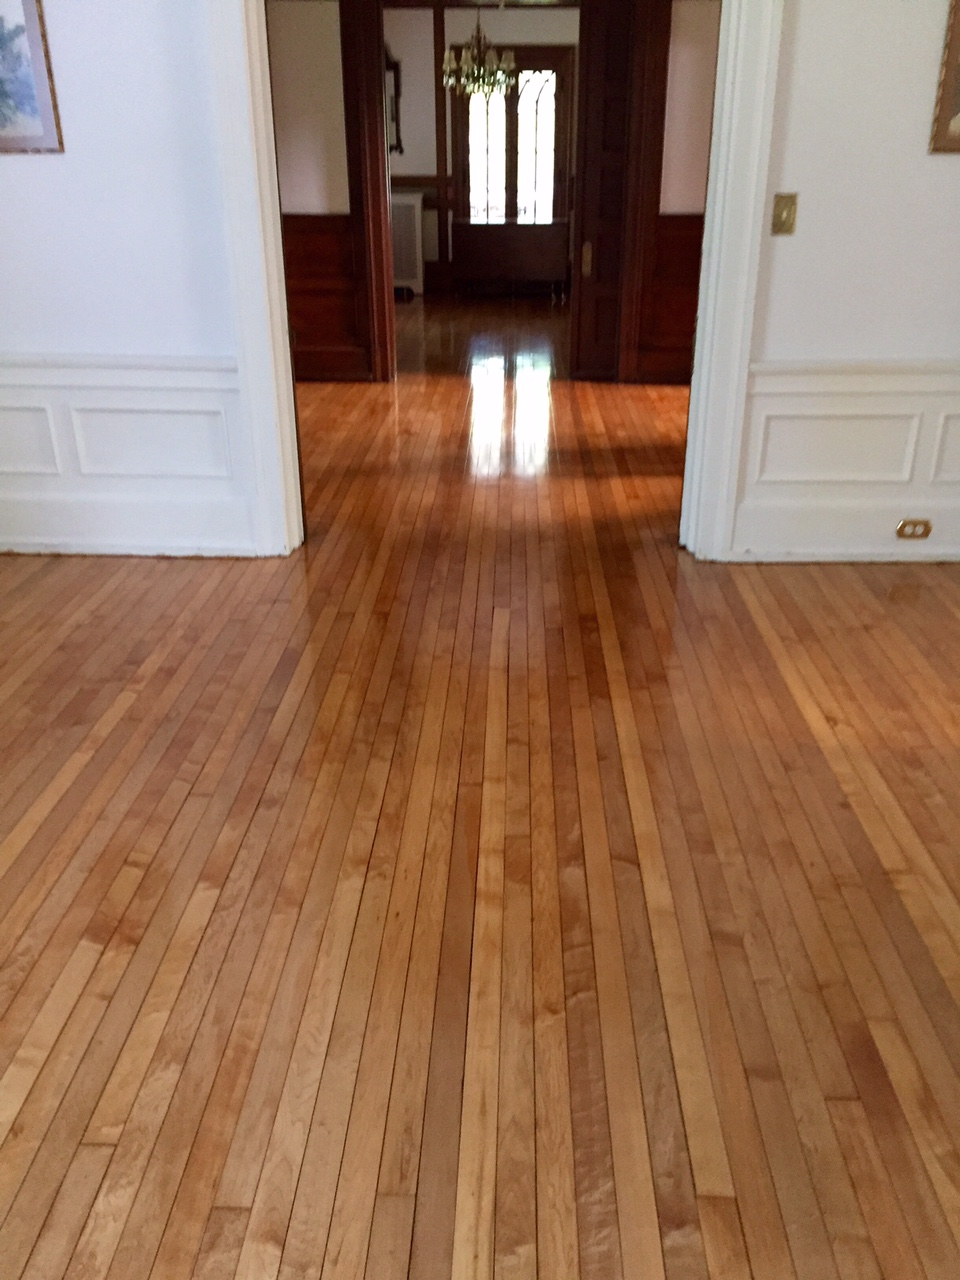 sandfree refinishing hardwood floors in richmond